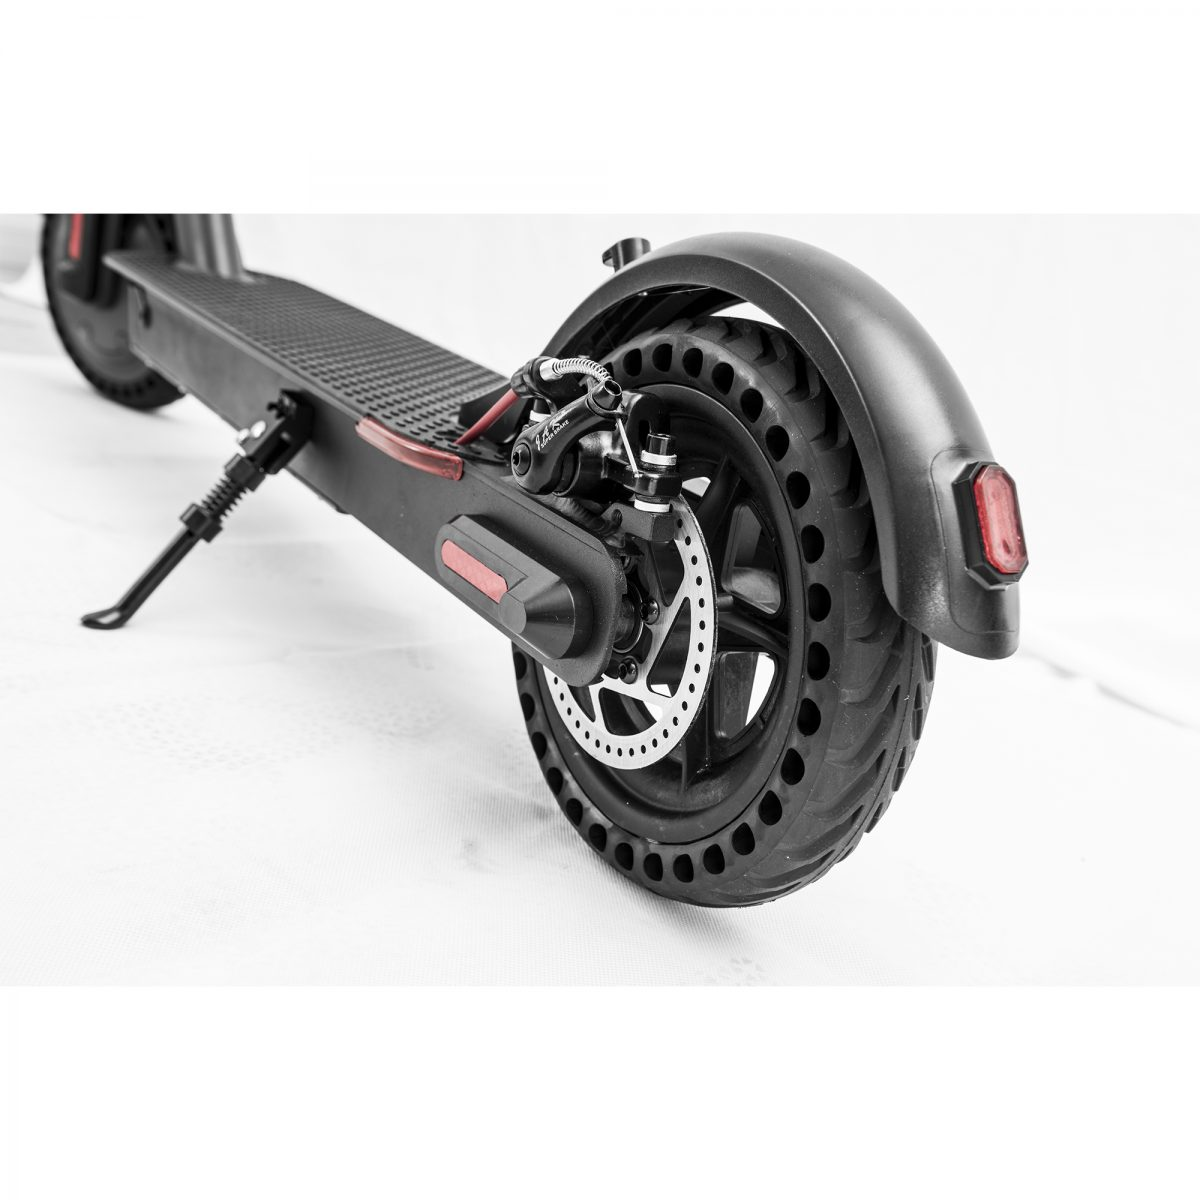 Detail of the electric scooter wheels E9 Basic - Zwheel